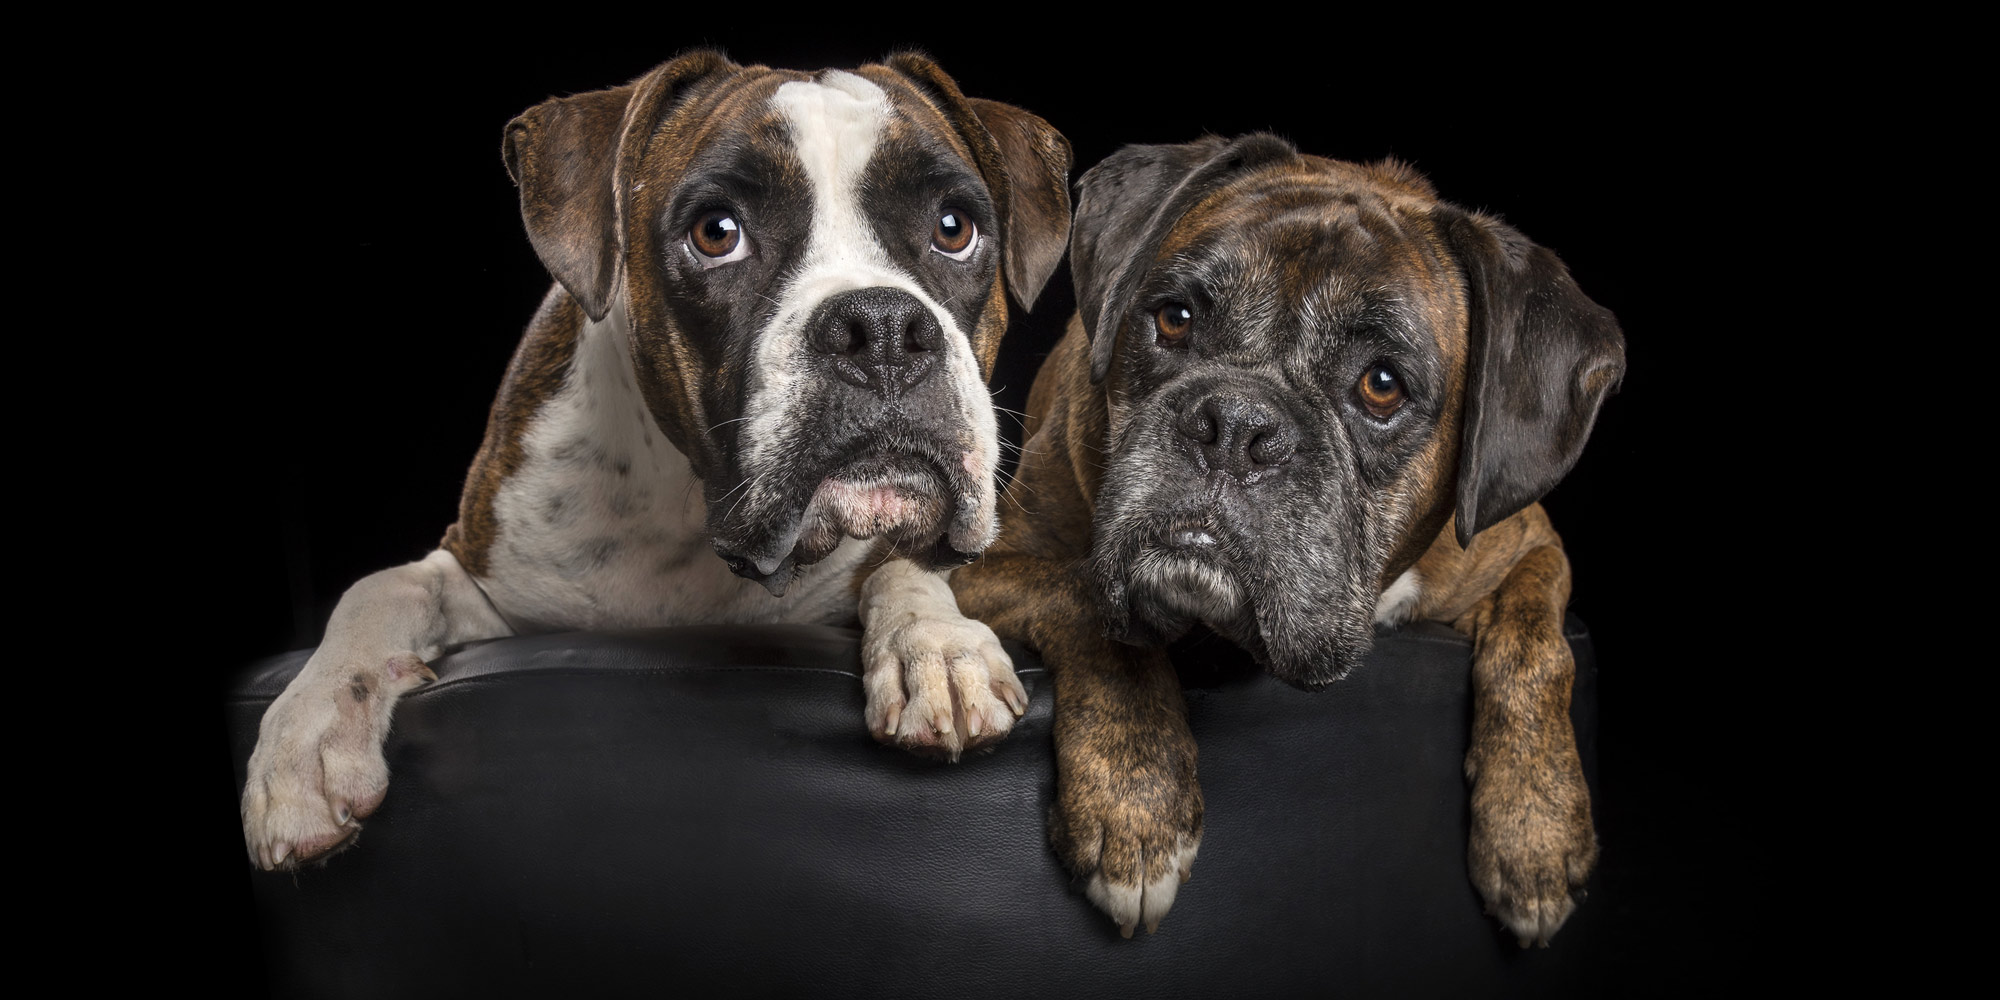 sweet pair of boxer dogs snuggling together